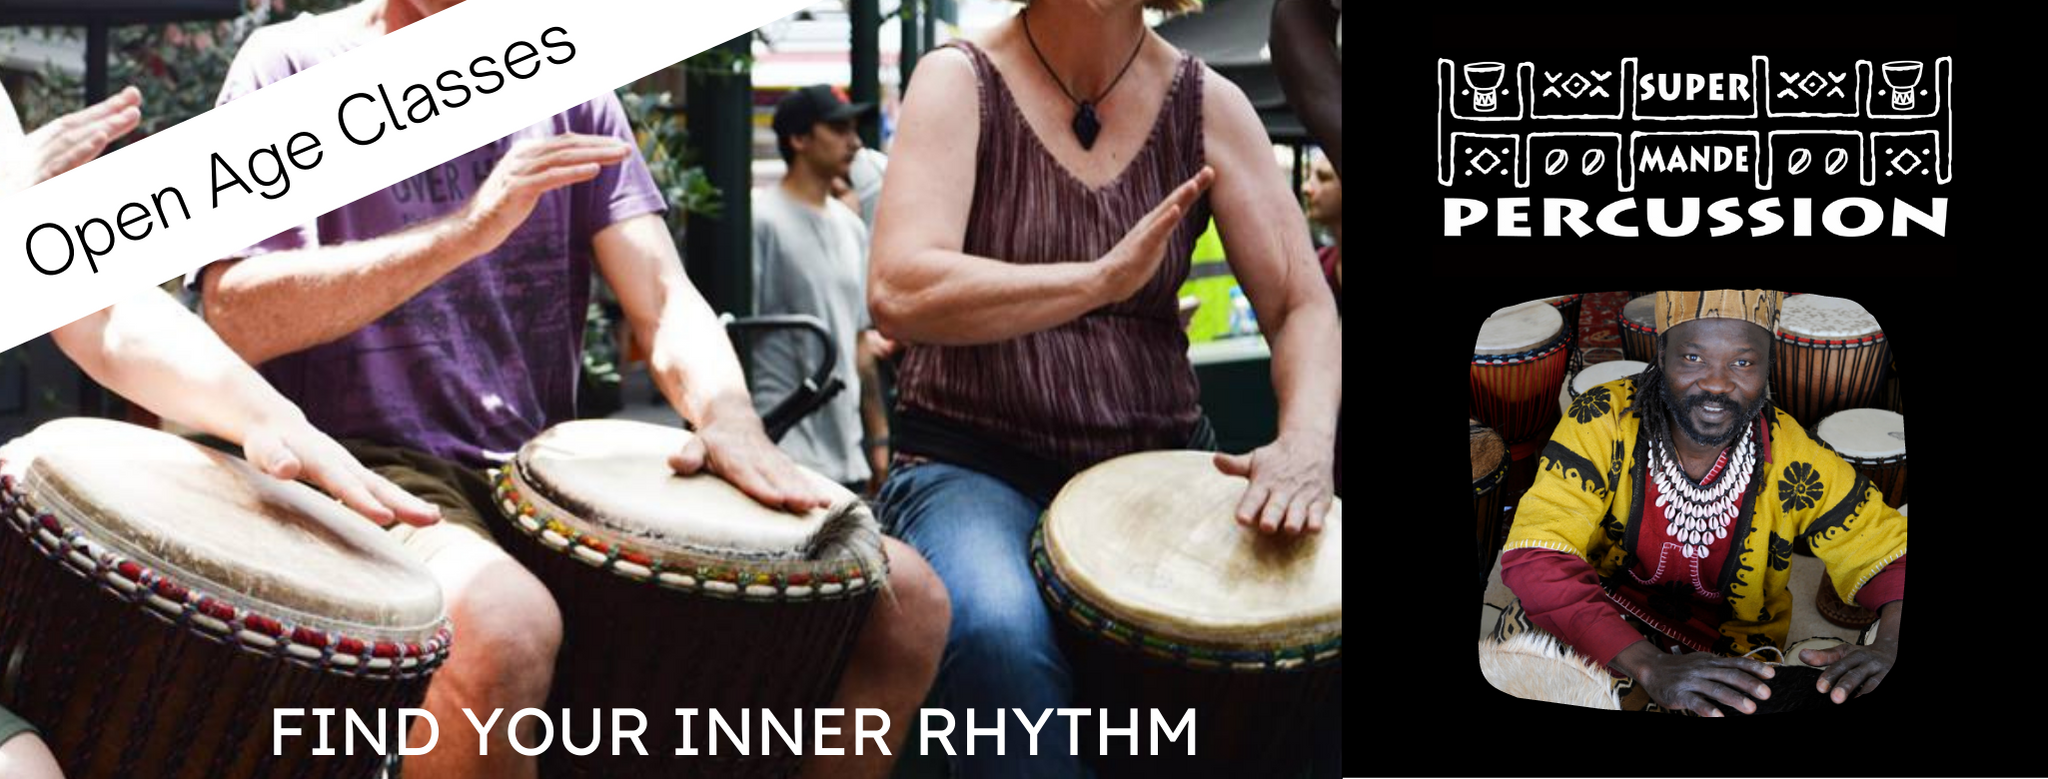 Open age classes in African Drumming banner image